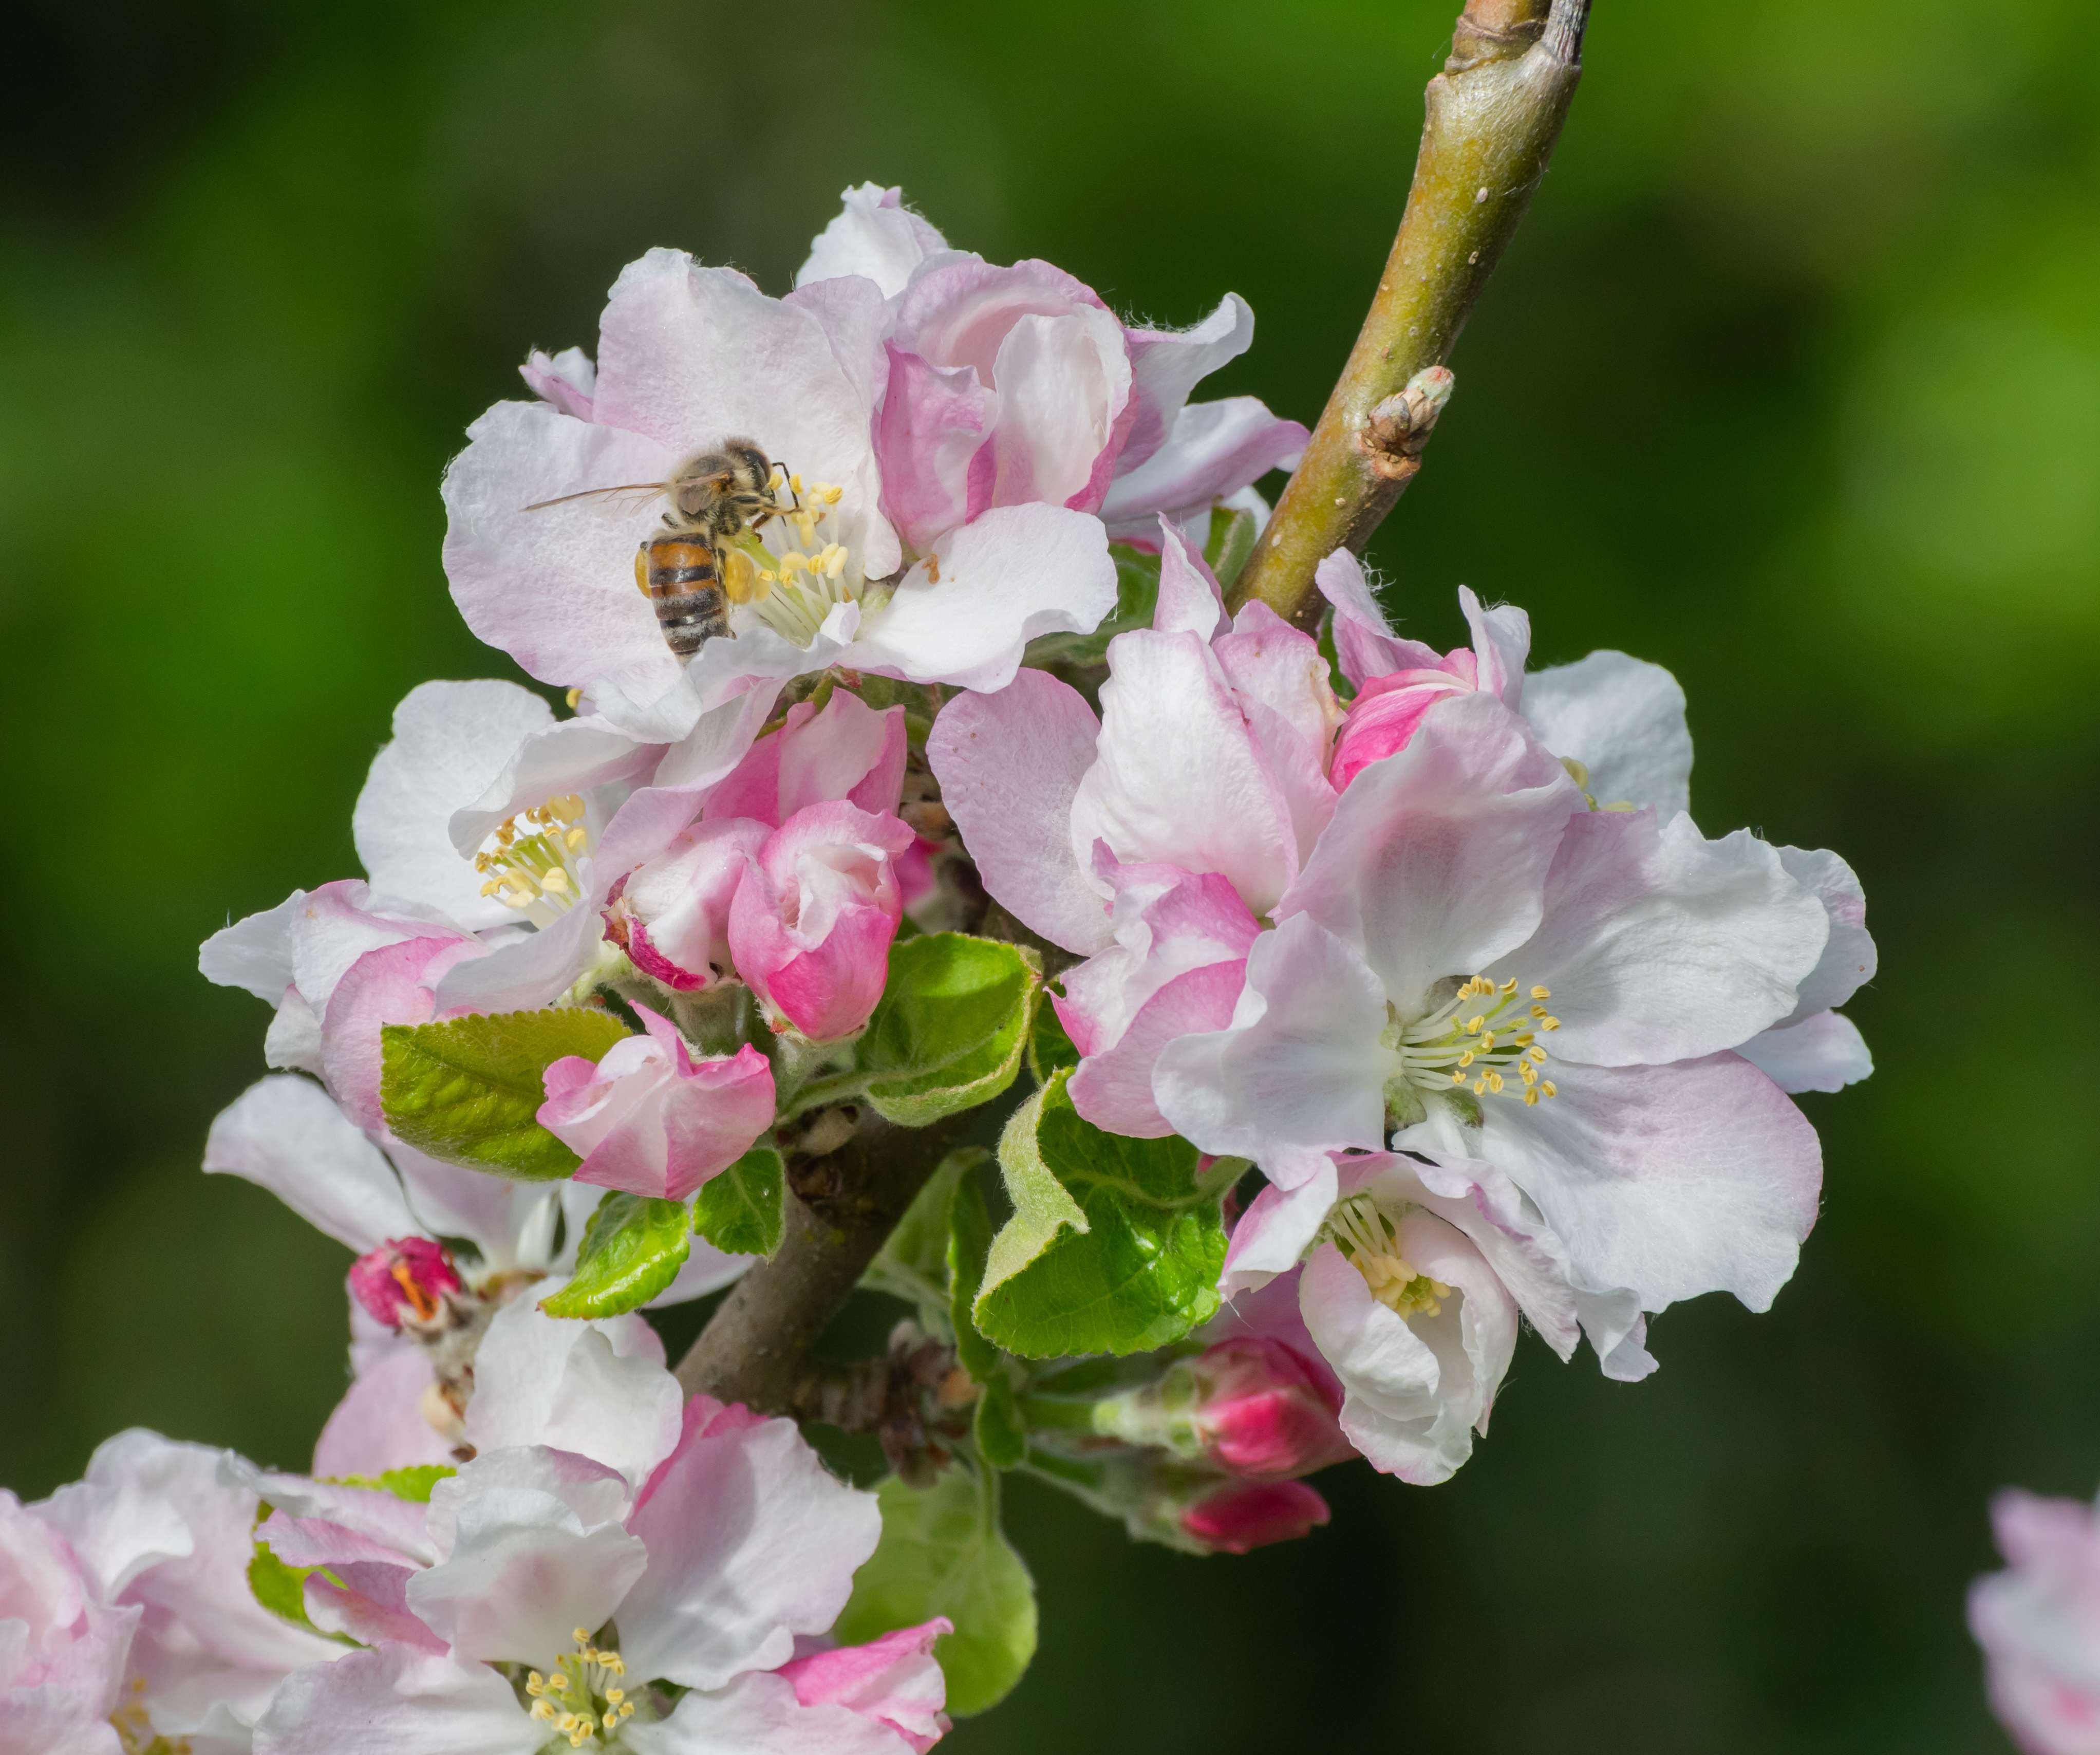 Pink and white flowers of Malus domestica tree